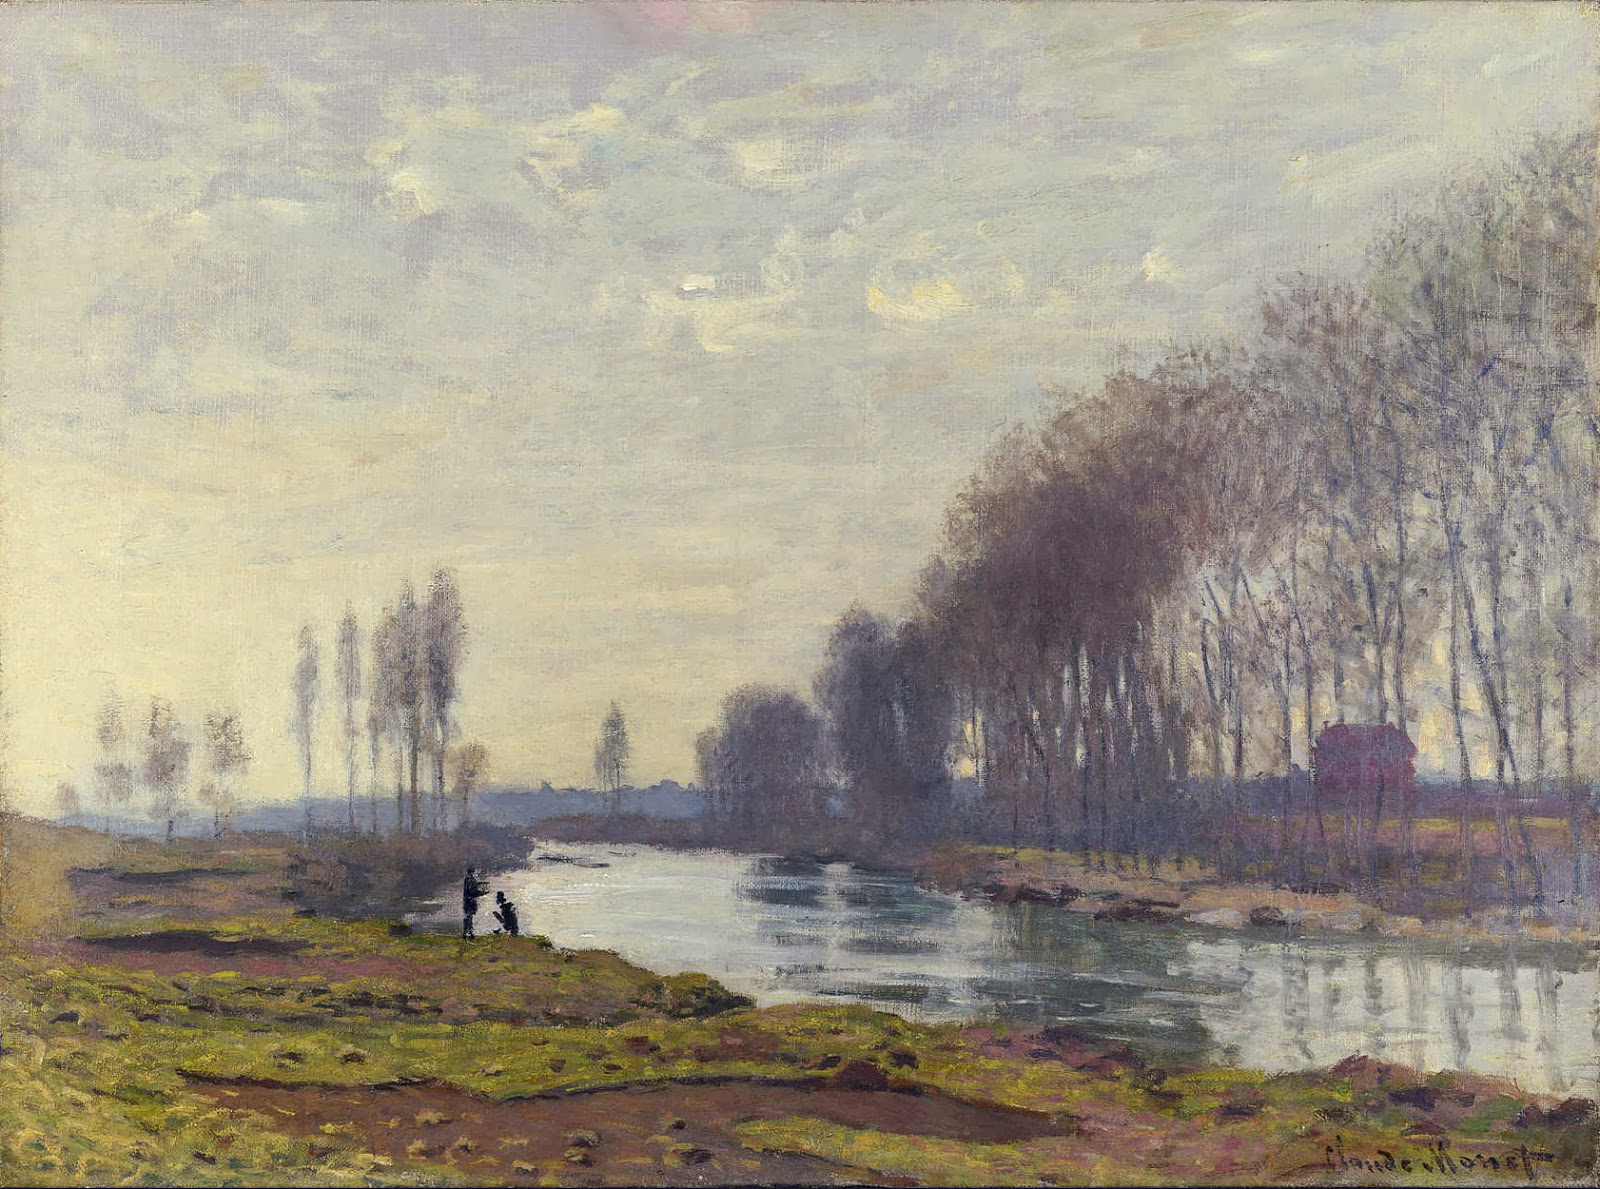 art artists claude monet part  claude monet 1872 the small arm of the seine at argenteuil oil on canvas 52 6 x 71 8 cm the national gallery london